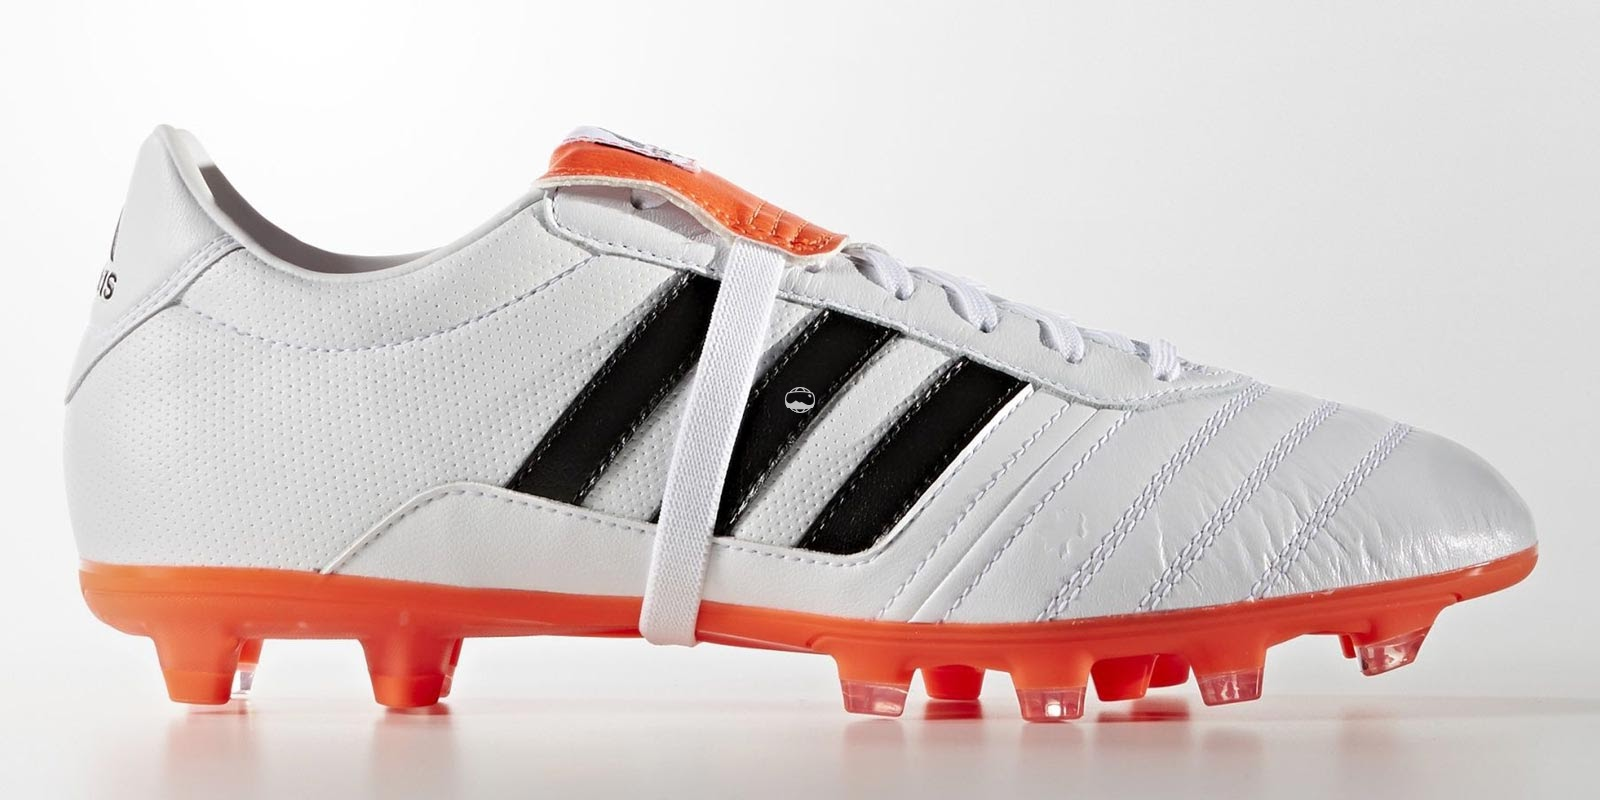 all-adidas-gloro-15-colorways-white-black